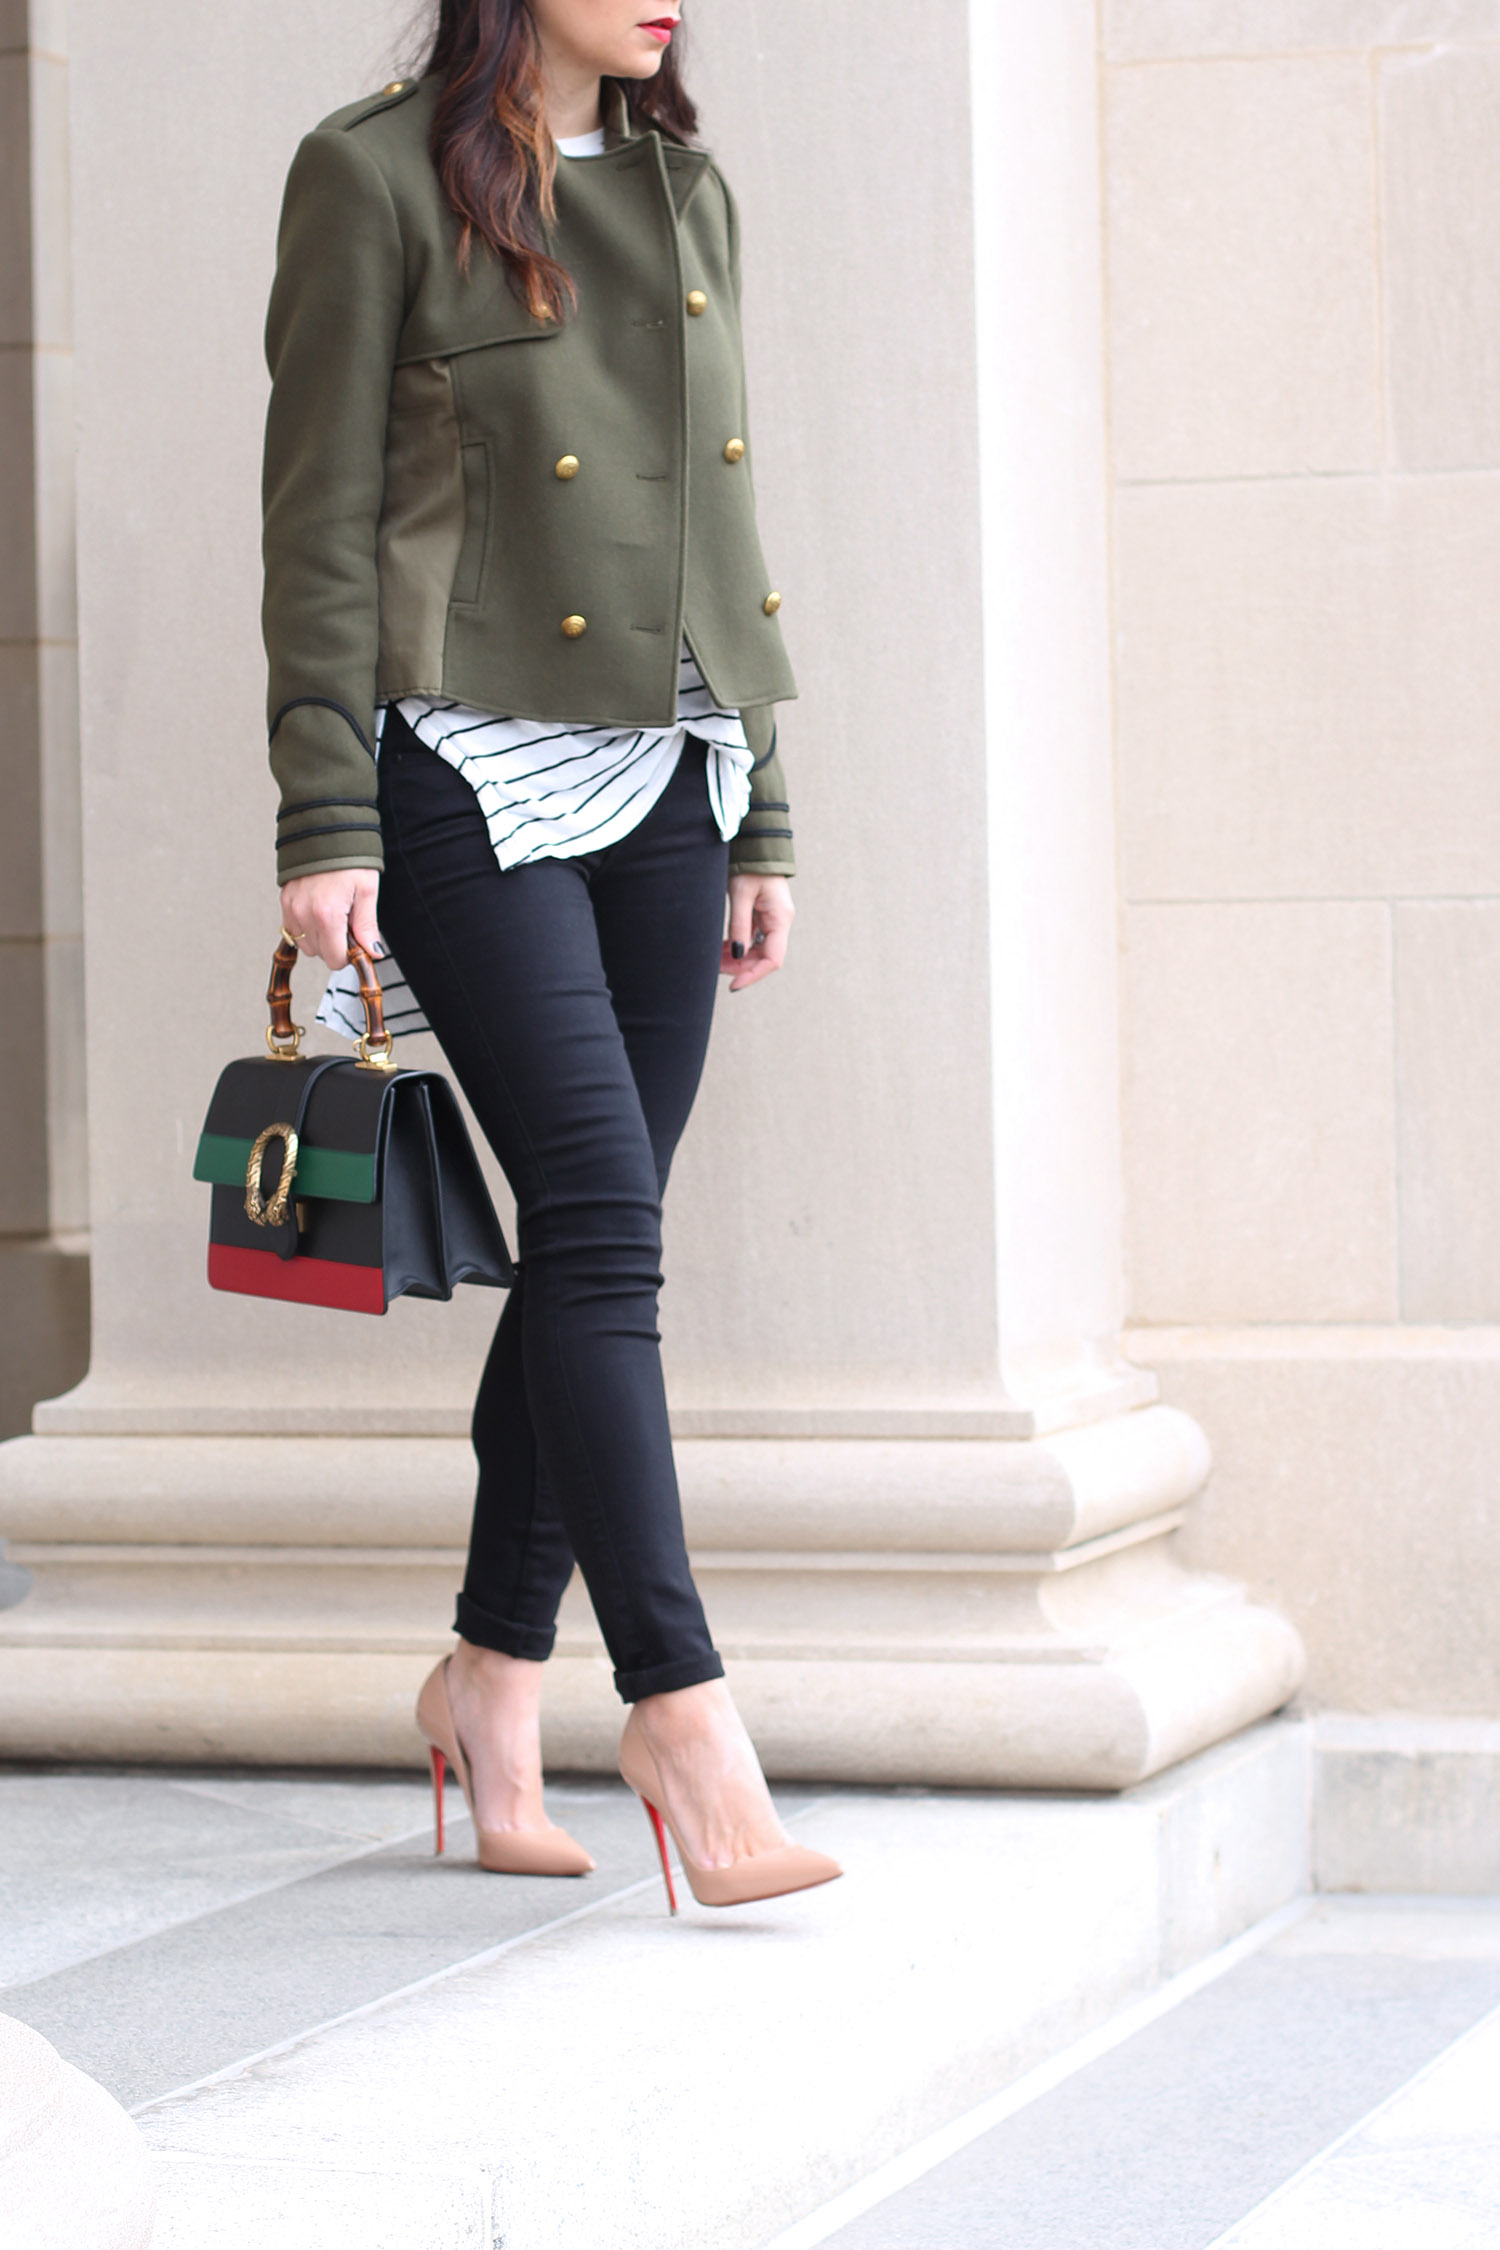 Gucci Dionysus Bag, Christian Louboutin So Kate Pumps